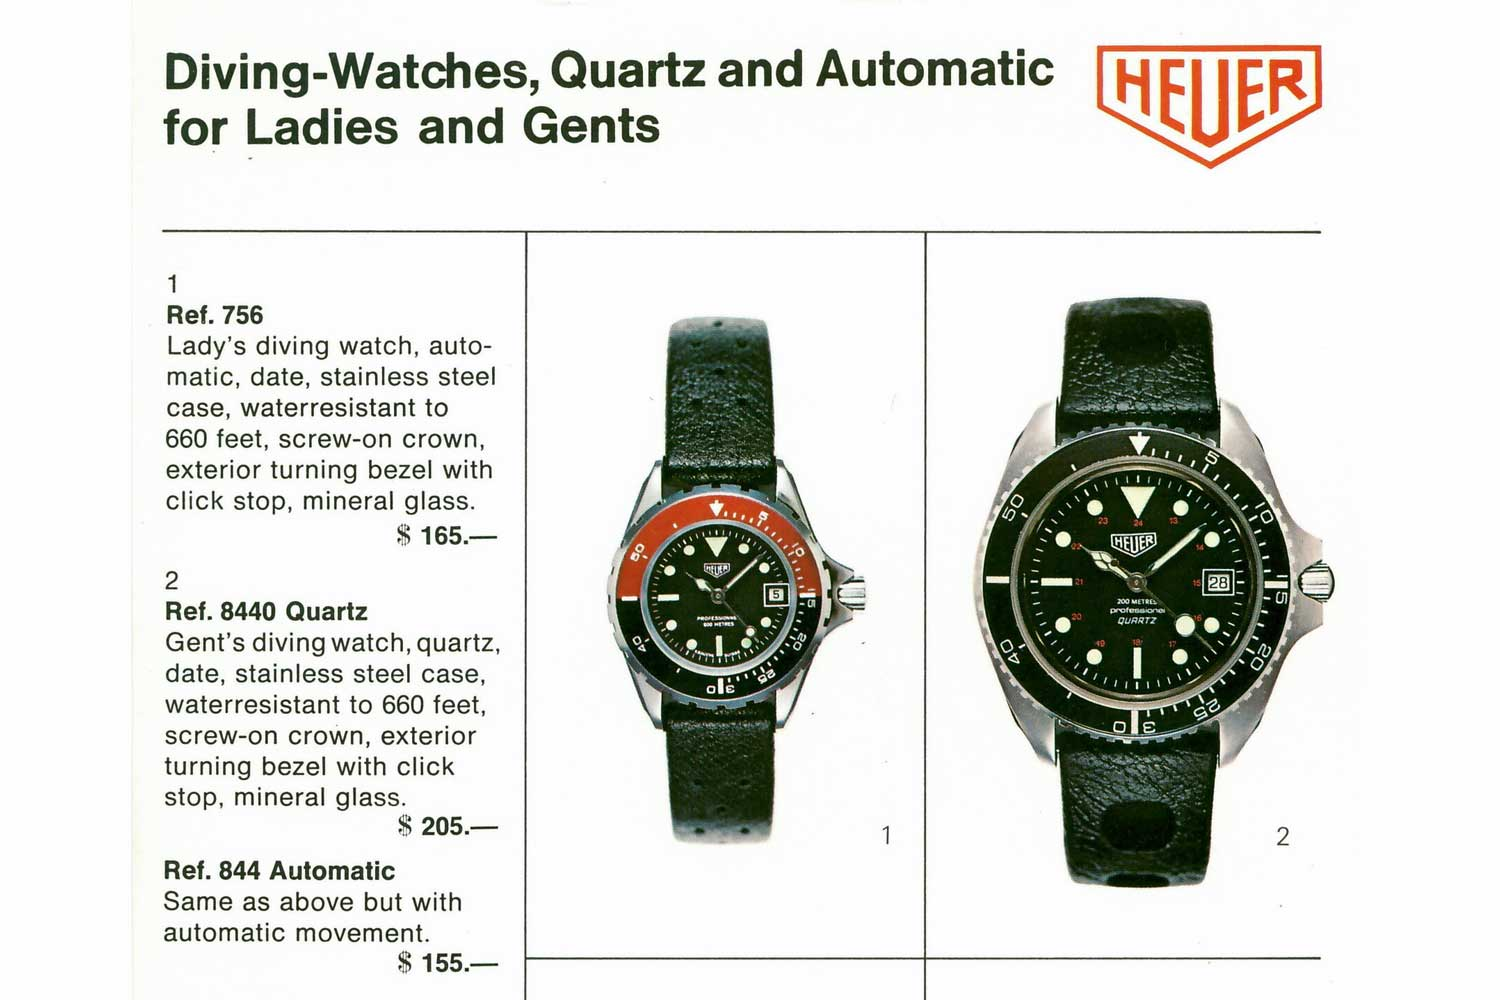 TAG Heuer's 1979 catalogue for dive watches (Image : Onthedash)